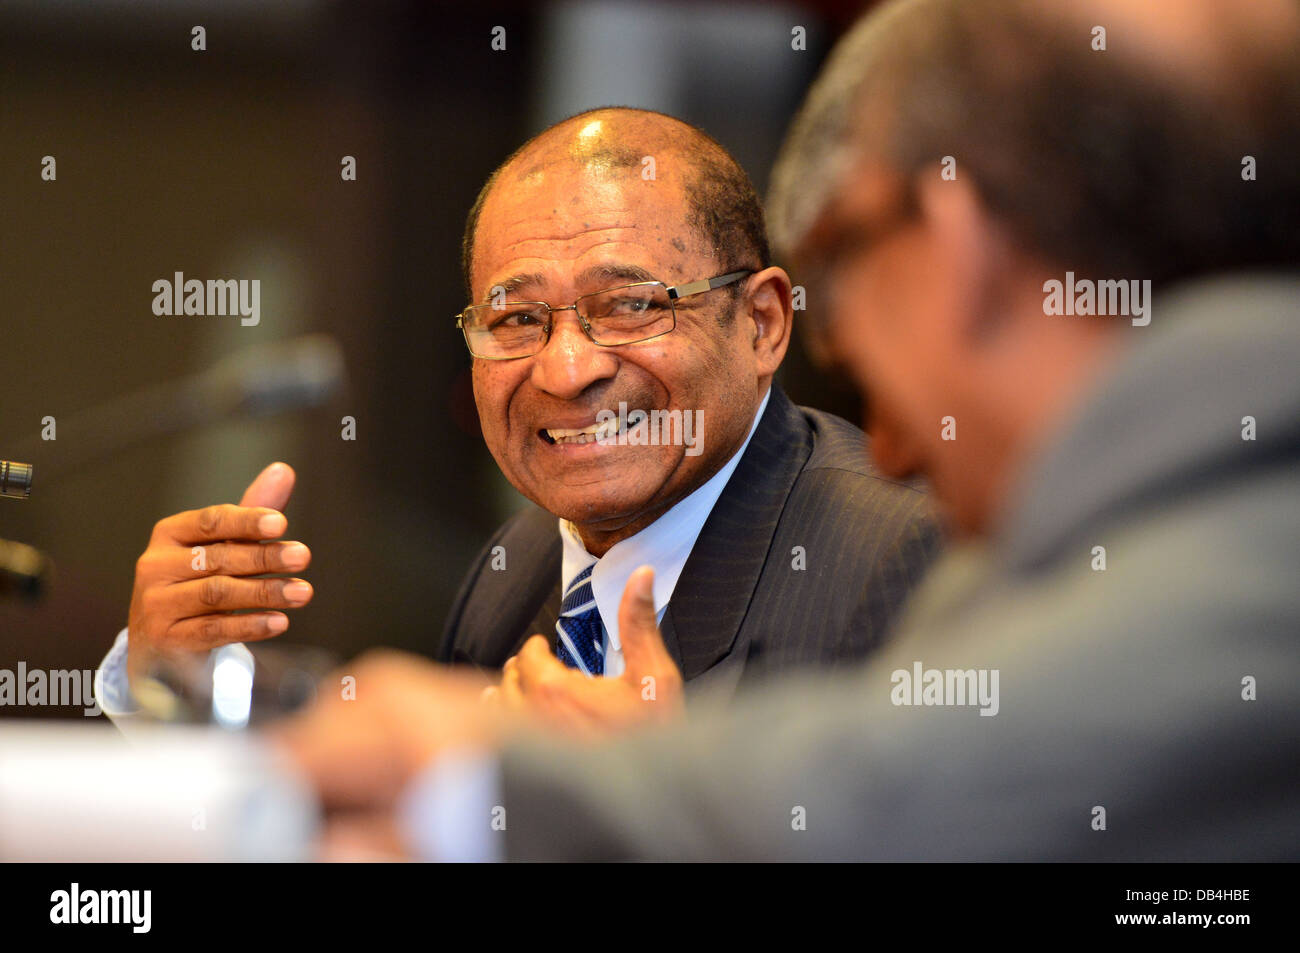 Dr Mothae Anthony Maruping, Commissioner for Economic Affairs, African Union Commission (AU), Addis Ababa, Ethiopia - Stock Image